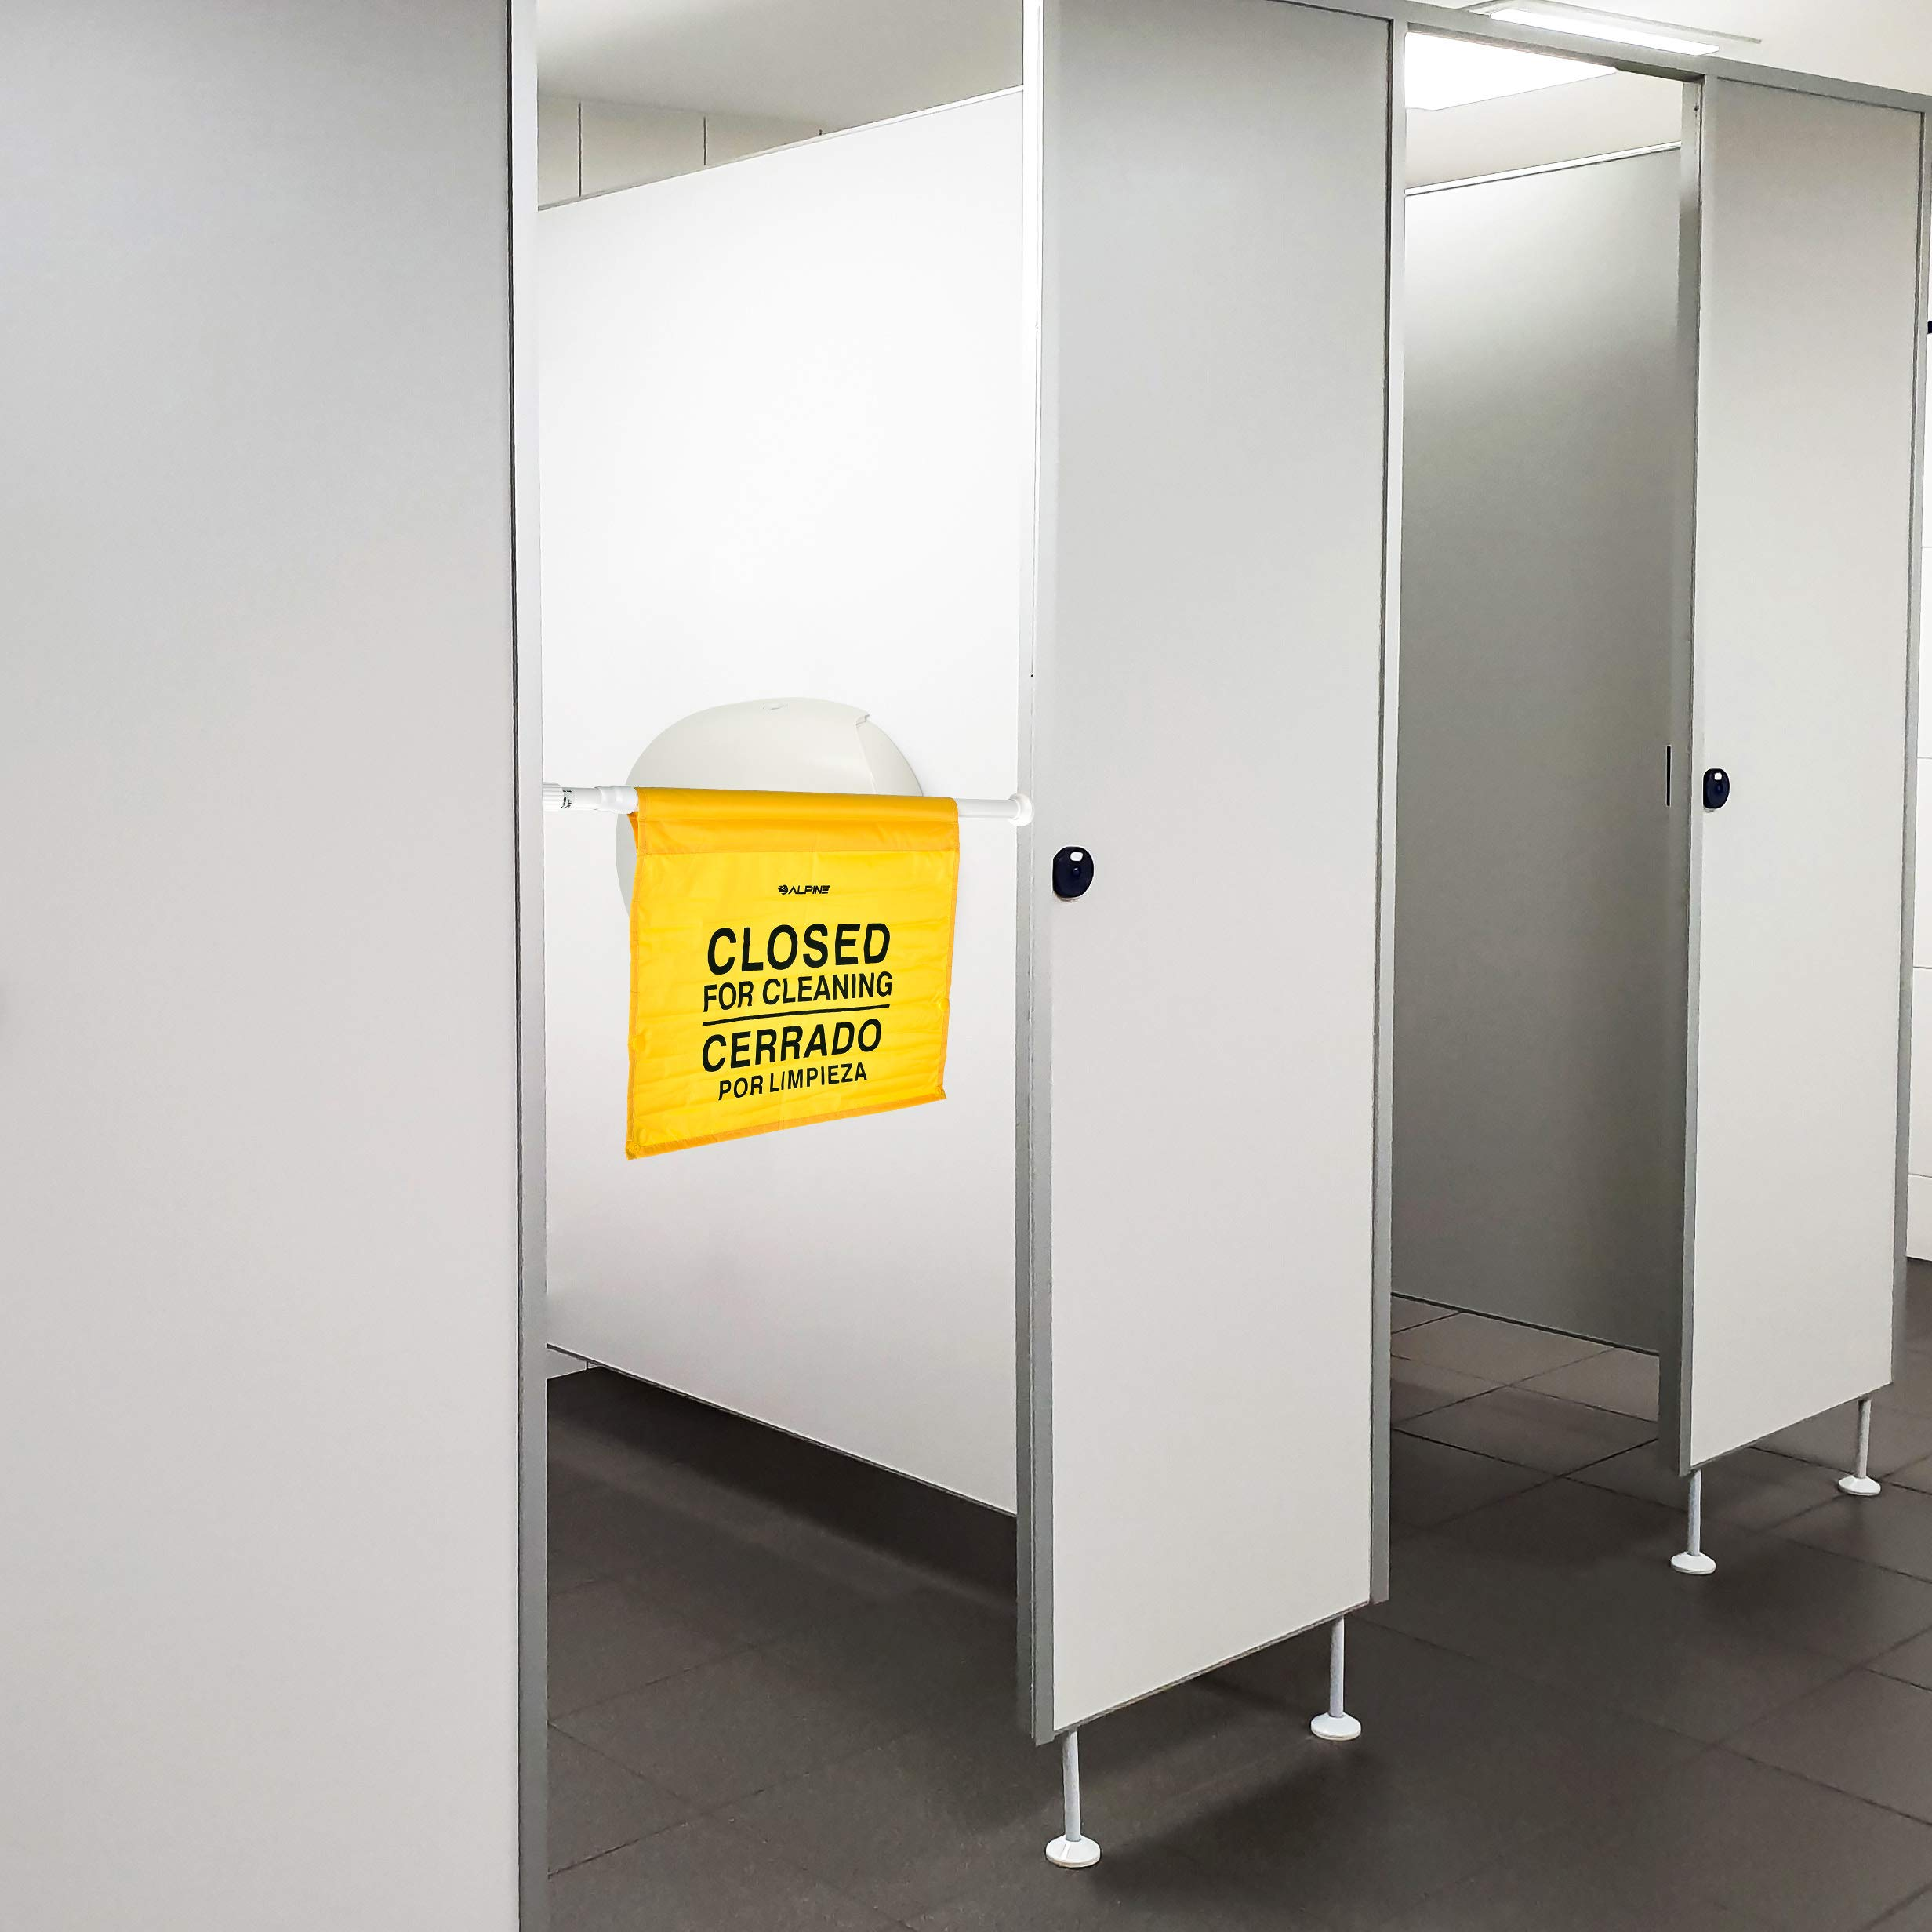 """Alpine Industries """"Closed for Cleaning"""" Hanging Safety Sign - Heavy Duty Warning Precaution - for Establishments and Commercial Use by Alpine Industries (Image #7)"""